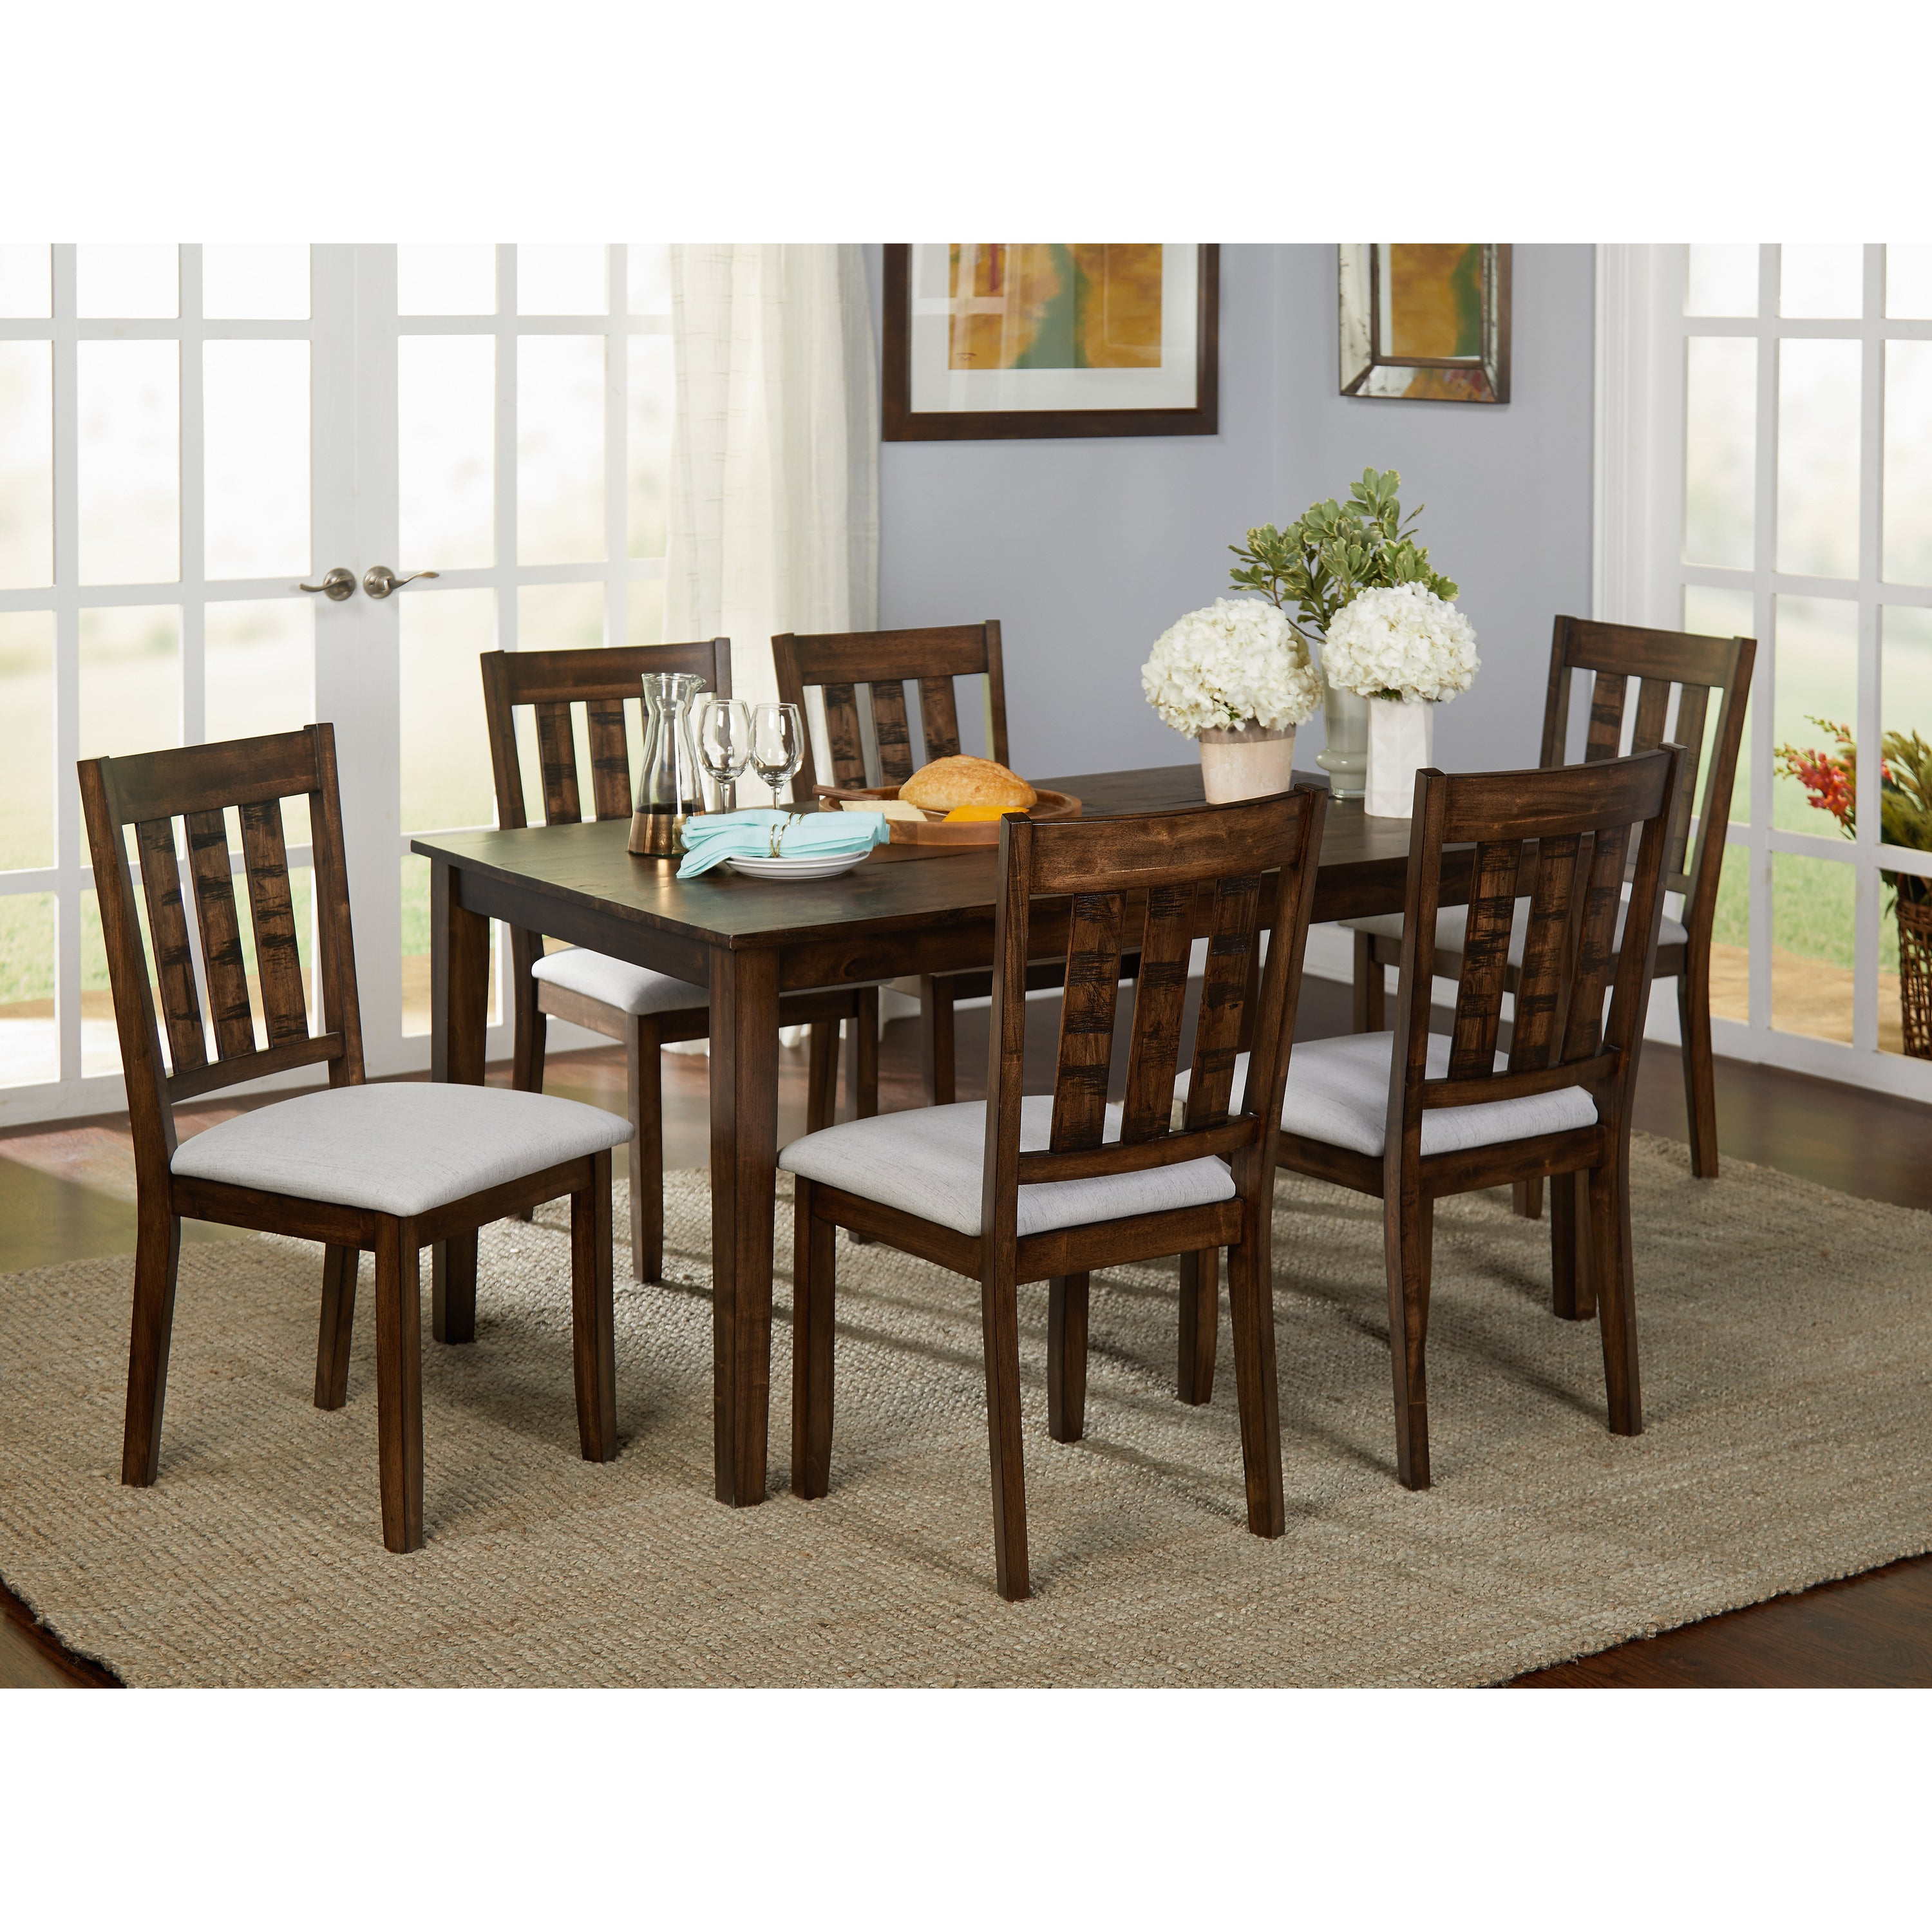 Newest Sheetz 3 Piece Counter Height Dining Sets Pertaining To Buy Kitchen & Dining Room Sets Online At Overstock (View 10 of 25)